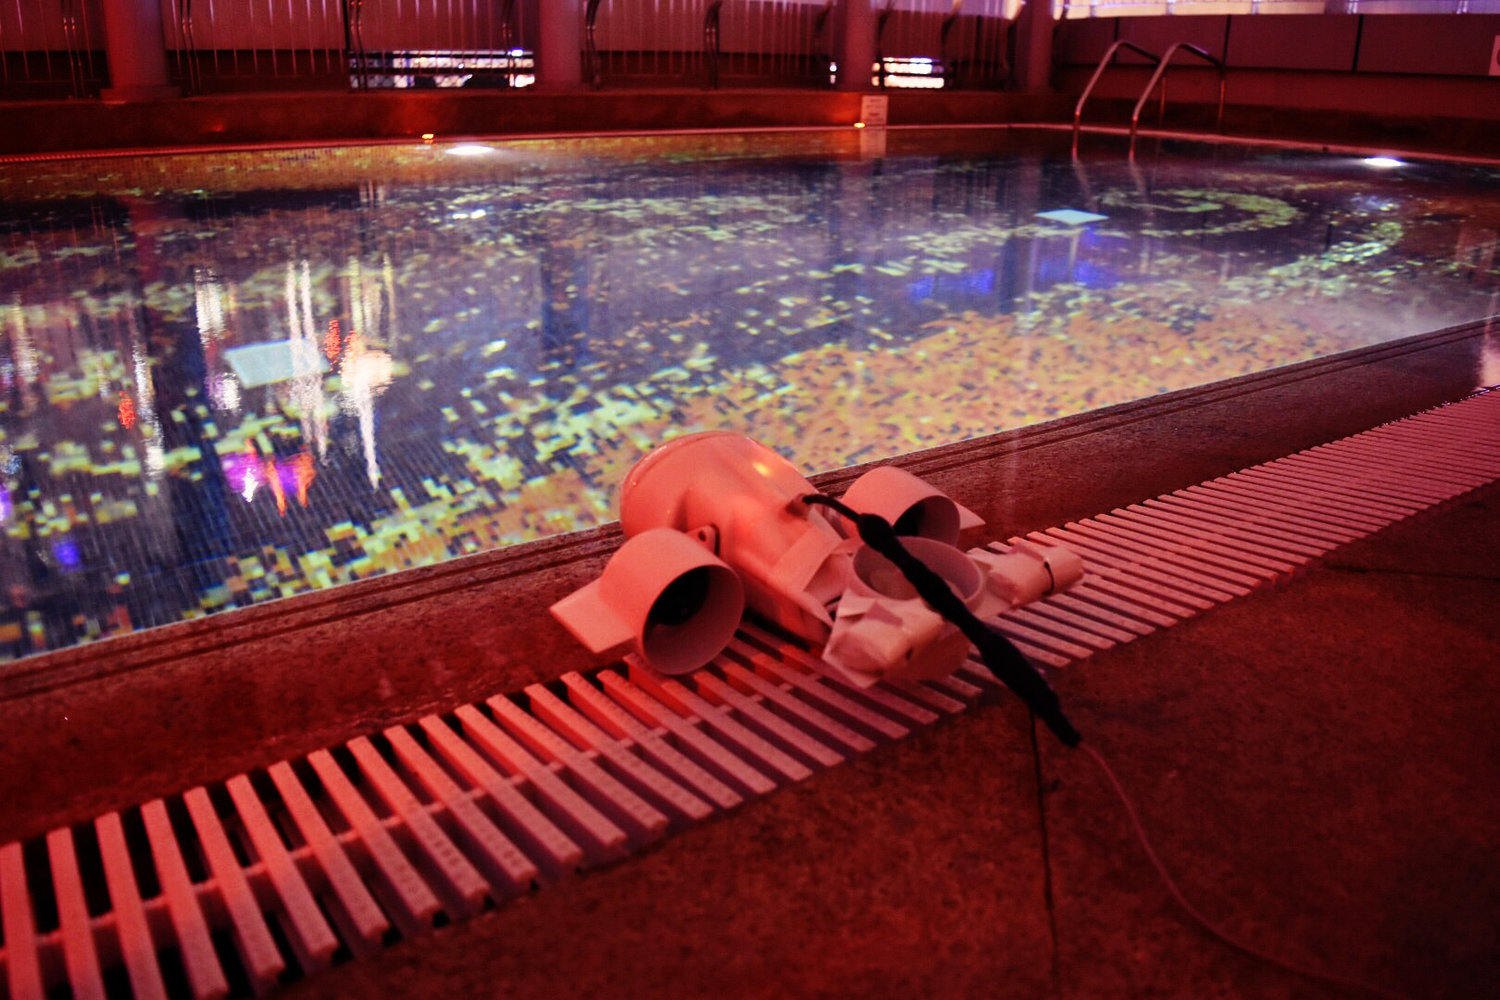 Nights In Dubai An Underwater Drones Trip To The Desert Fathom - How much is a fathom